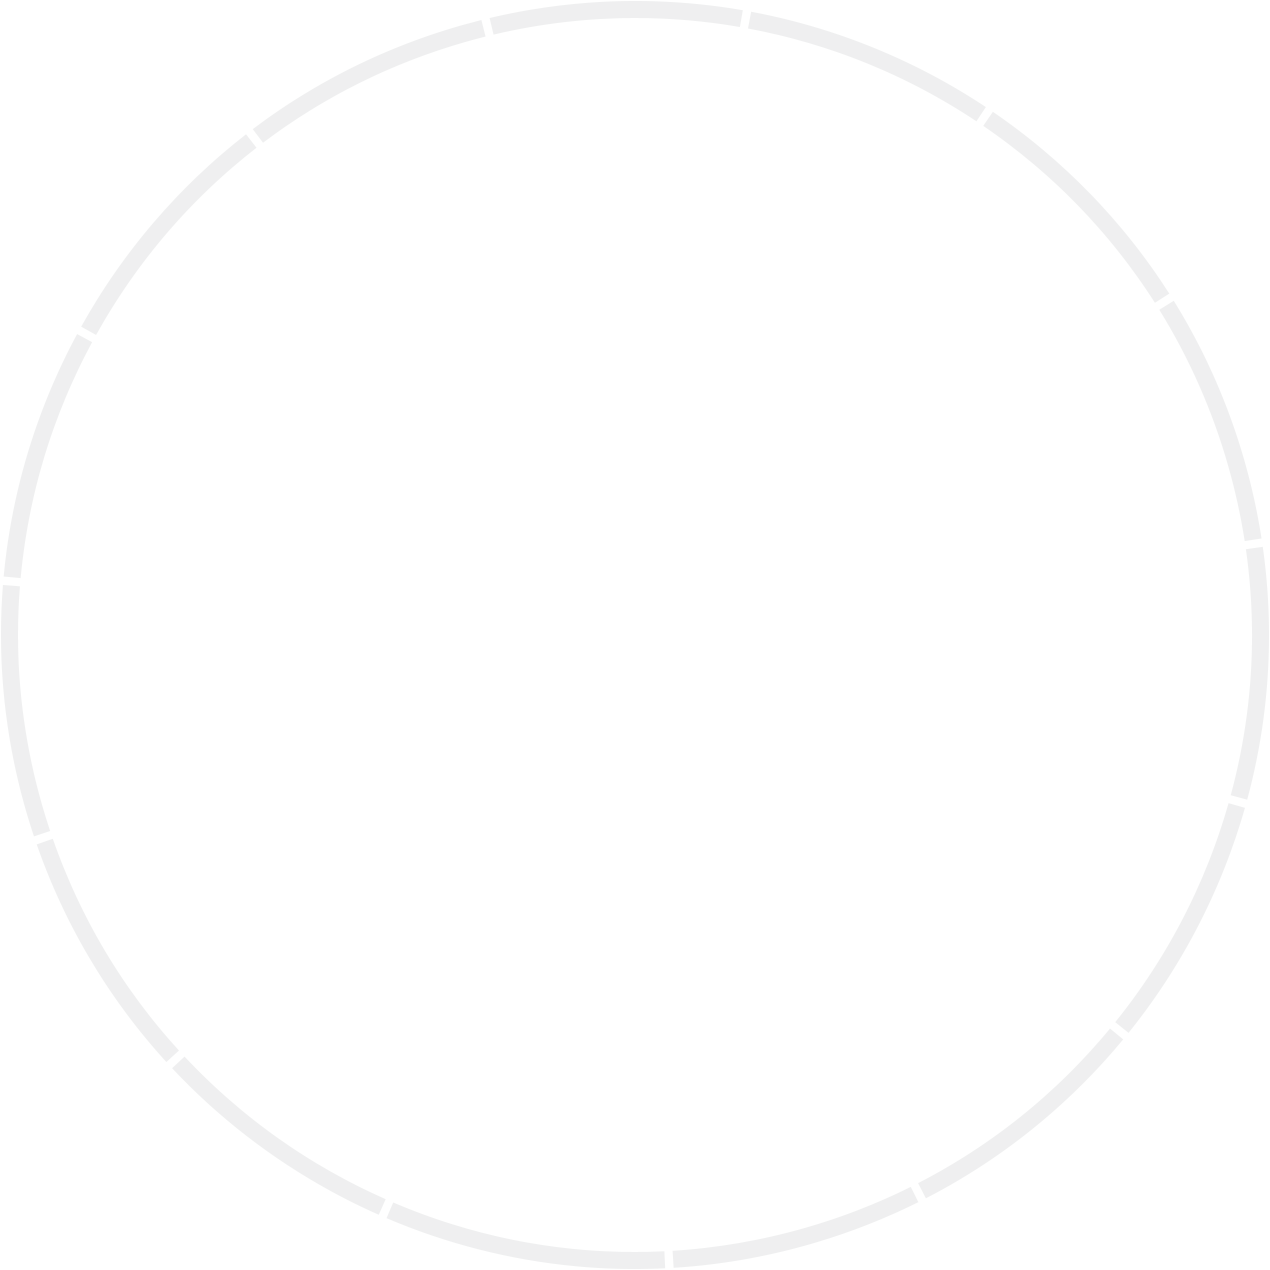 White Circle Outline Png (96+ images in Collection) Page 1.